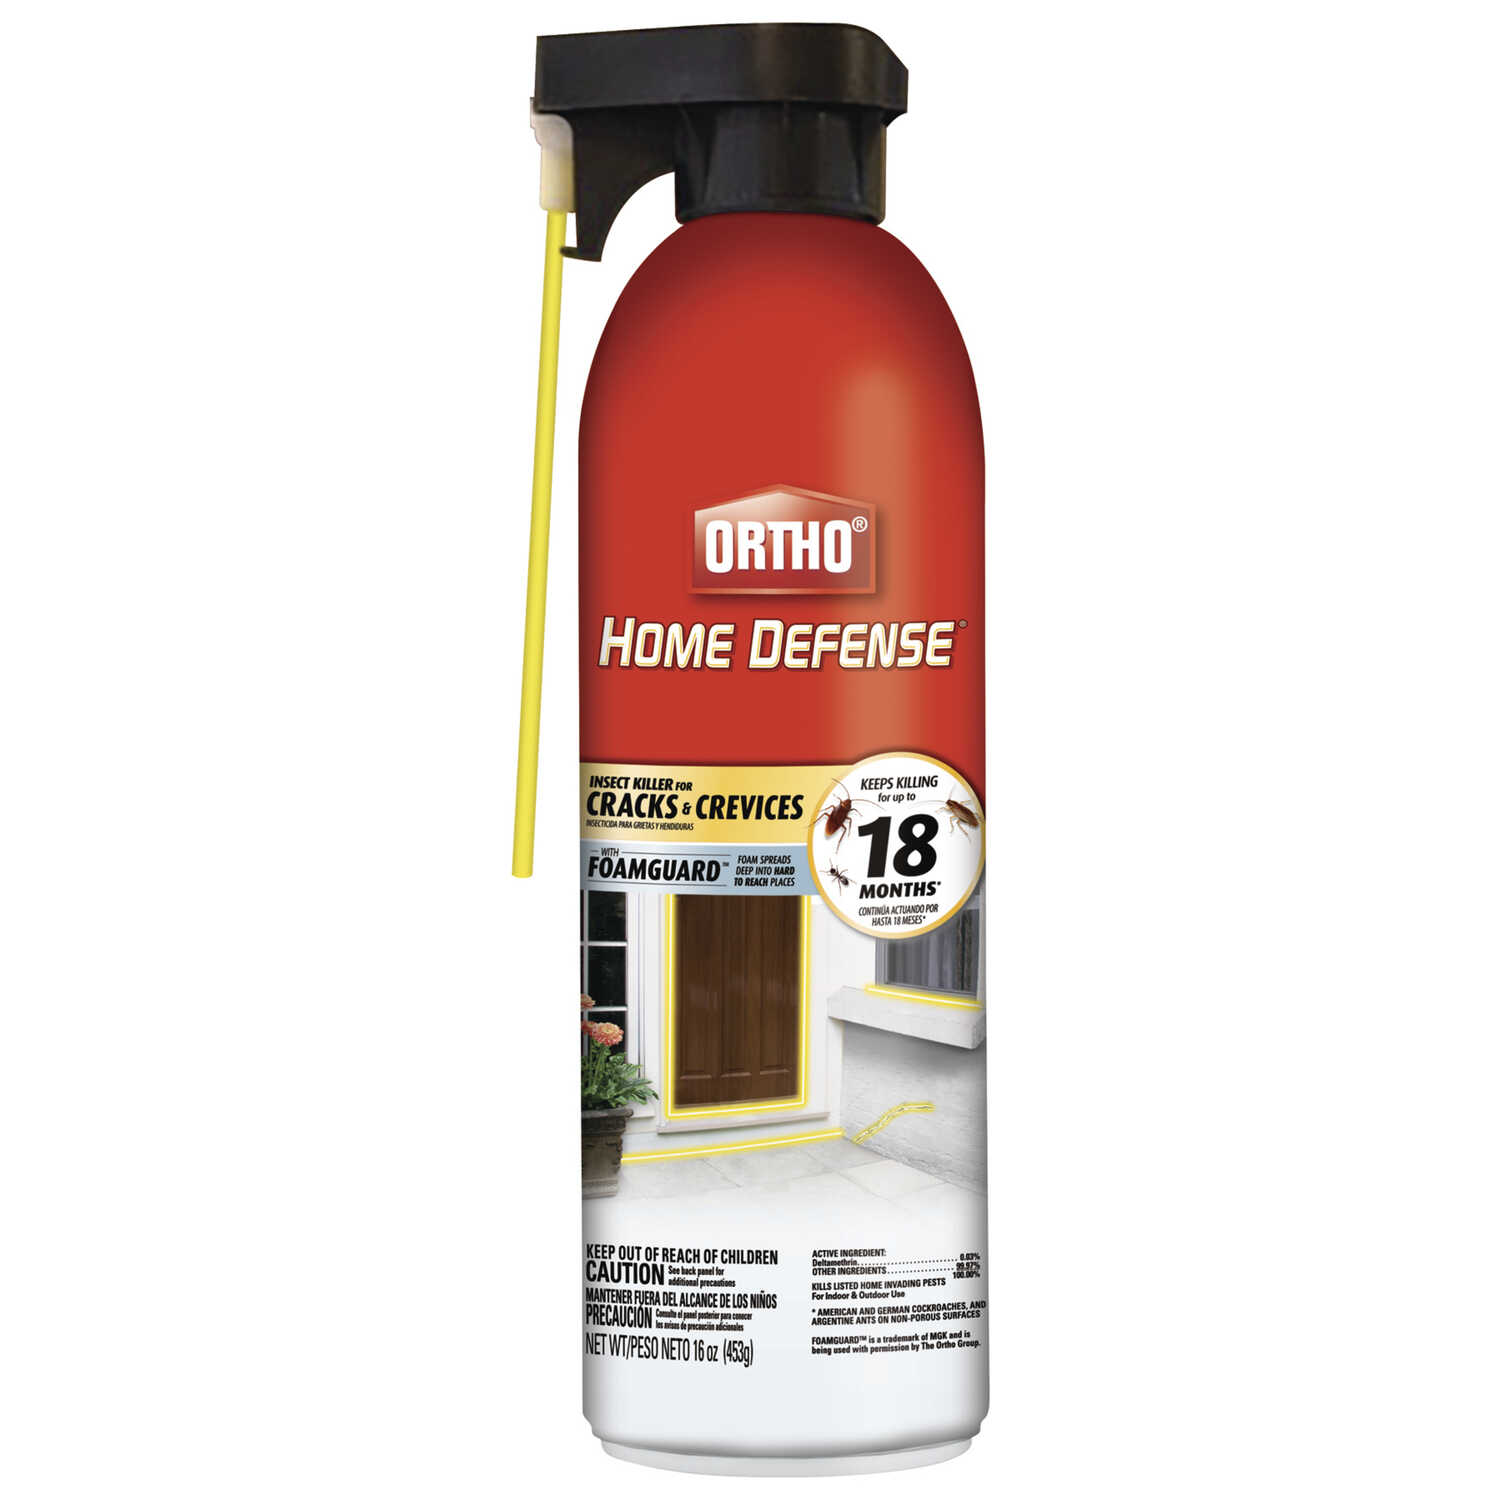 Ortho  Home Defense  Insect Killer For Cracks & Crevices  16 oz.